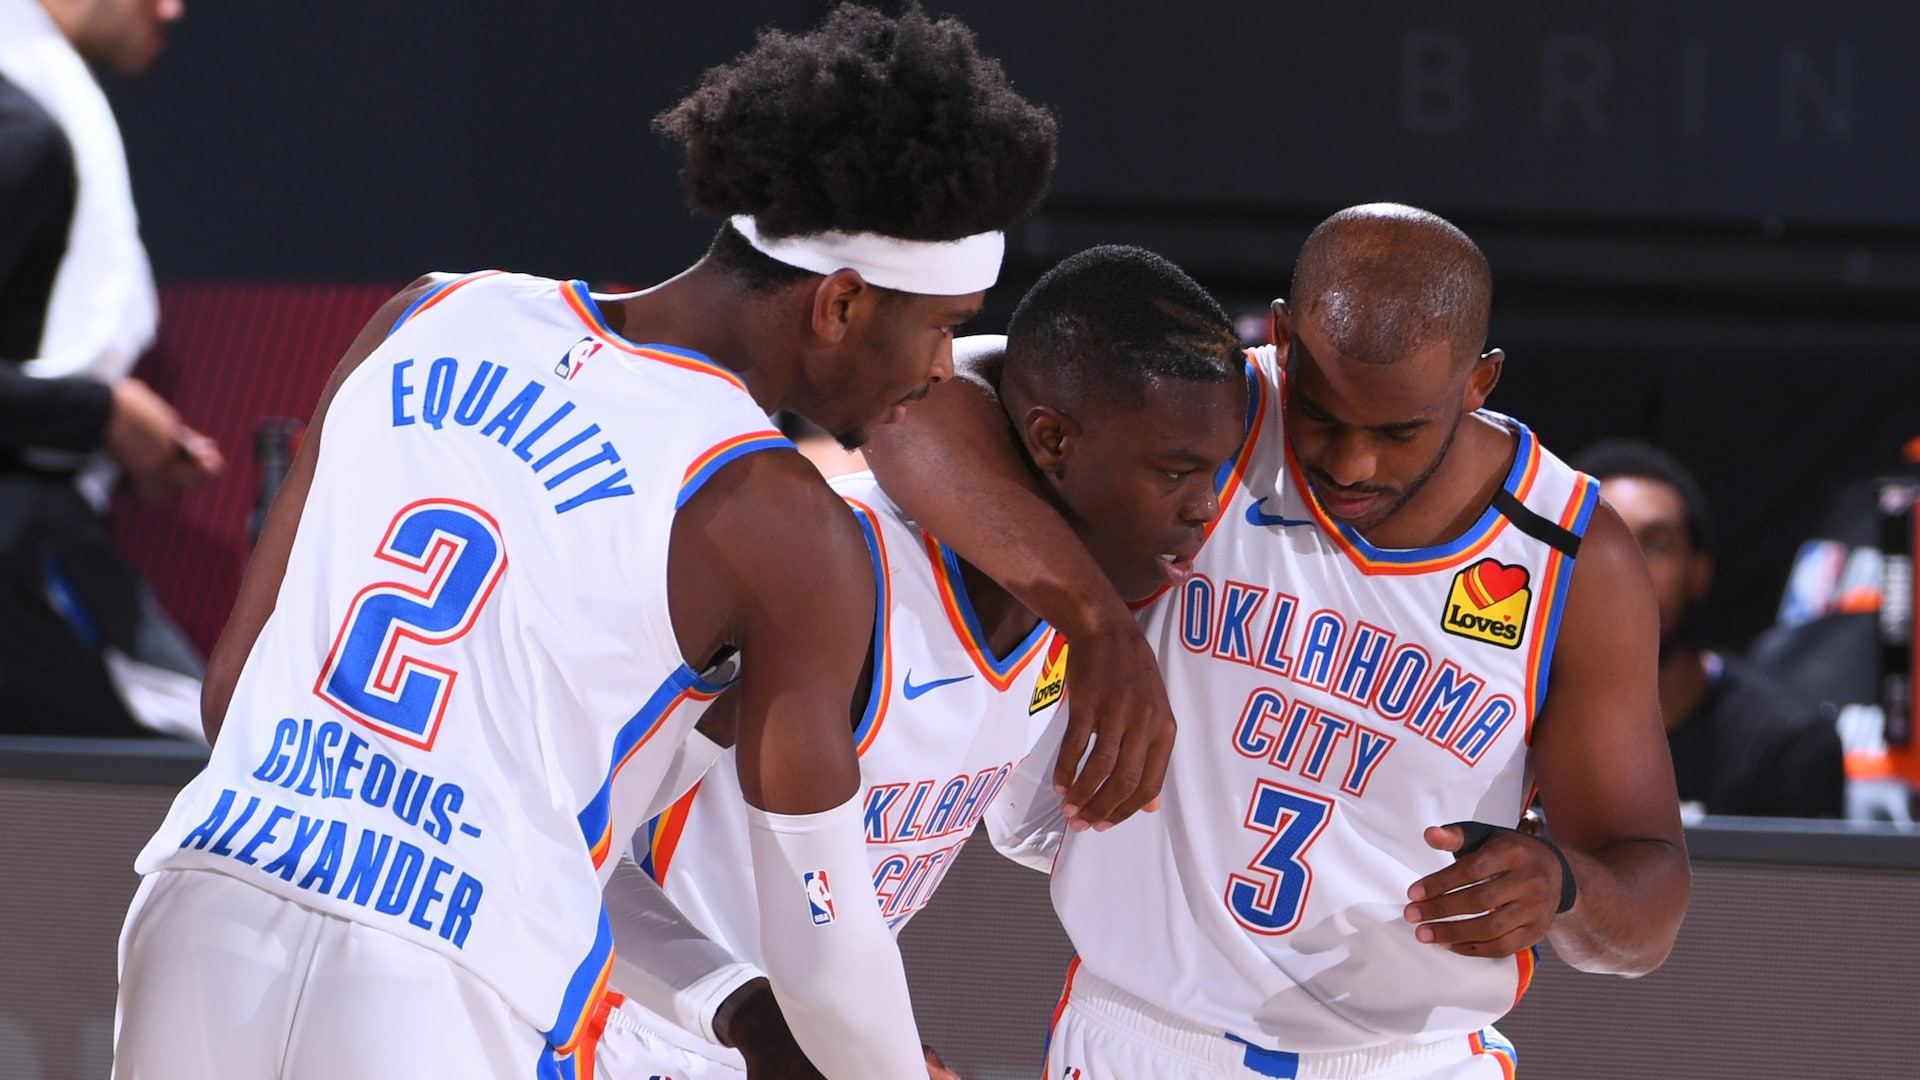 New 'Clutch City'? Behind its guards, OKC shows off its resilience in Game 4 win